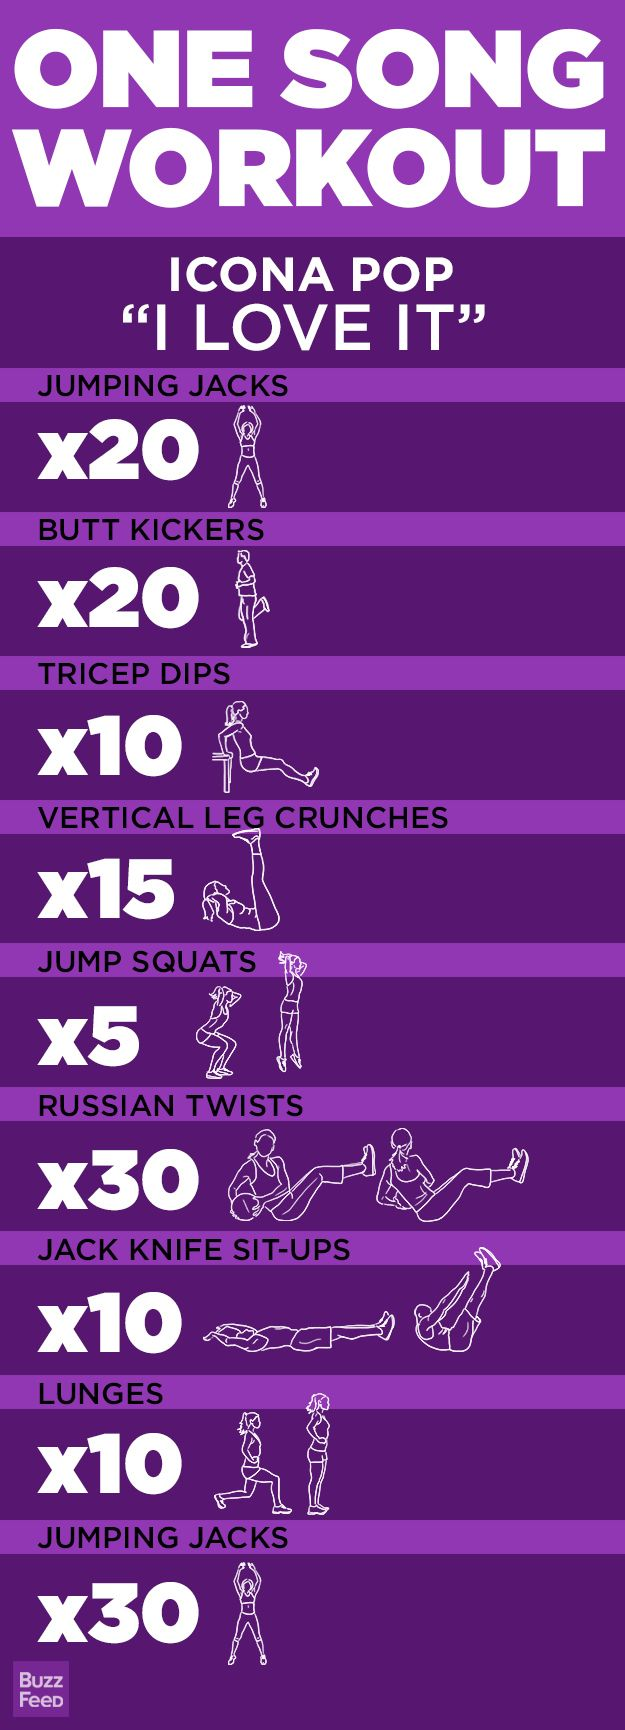 Workout. Try this !!!!!!